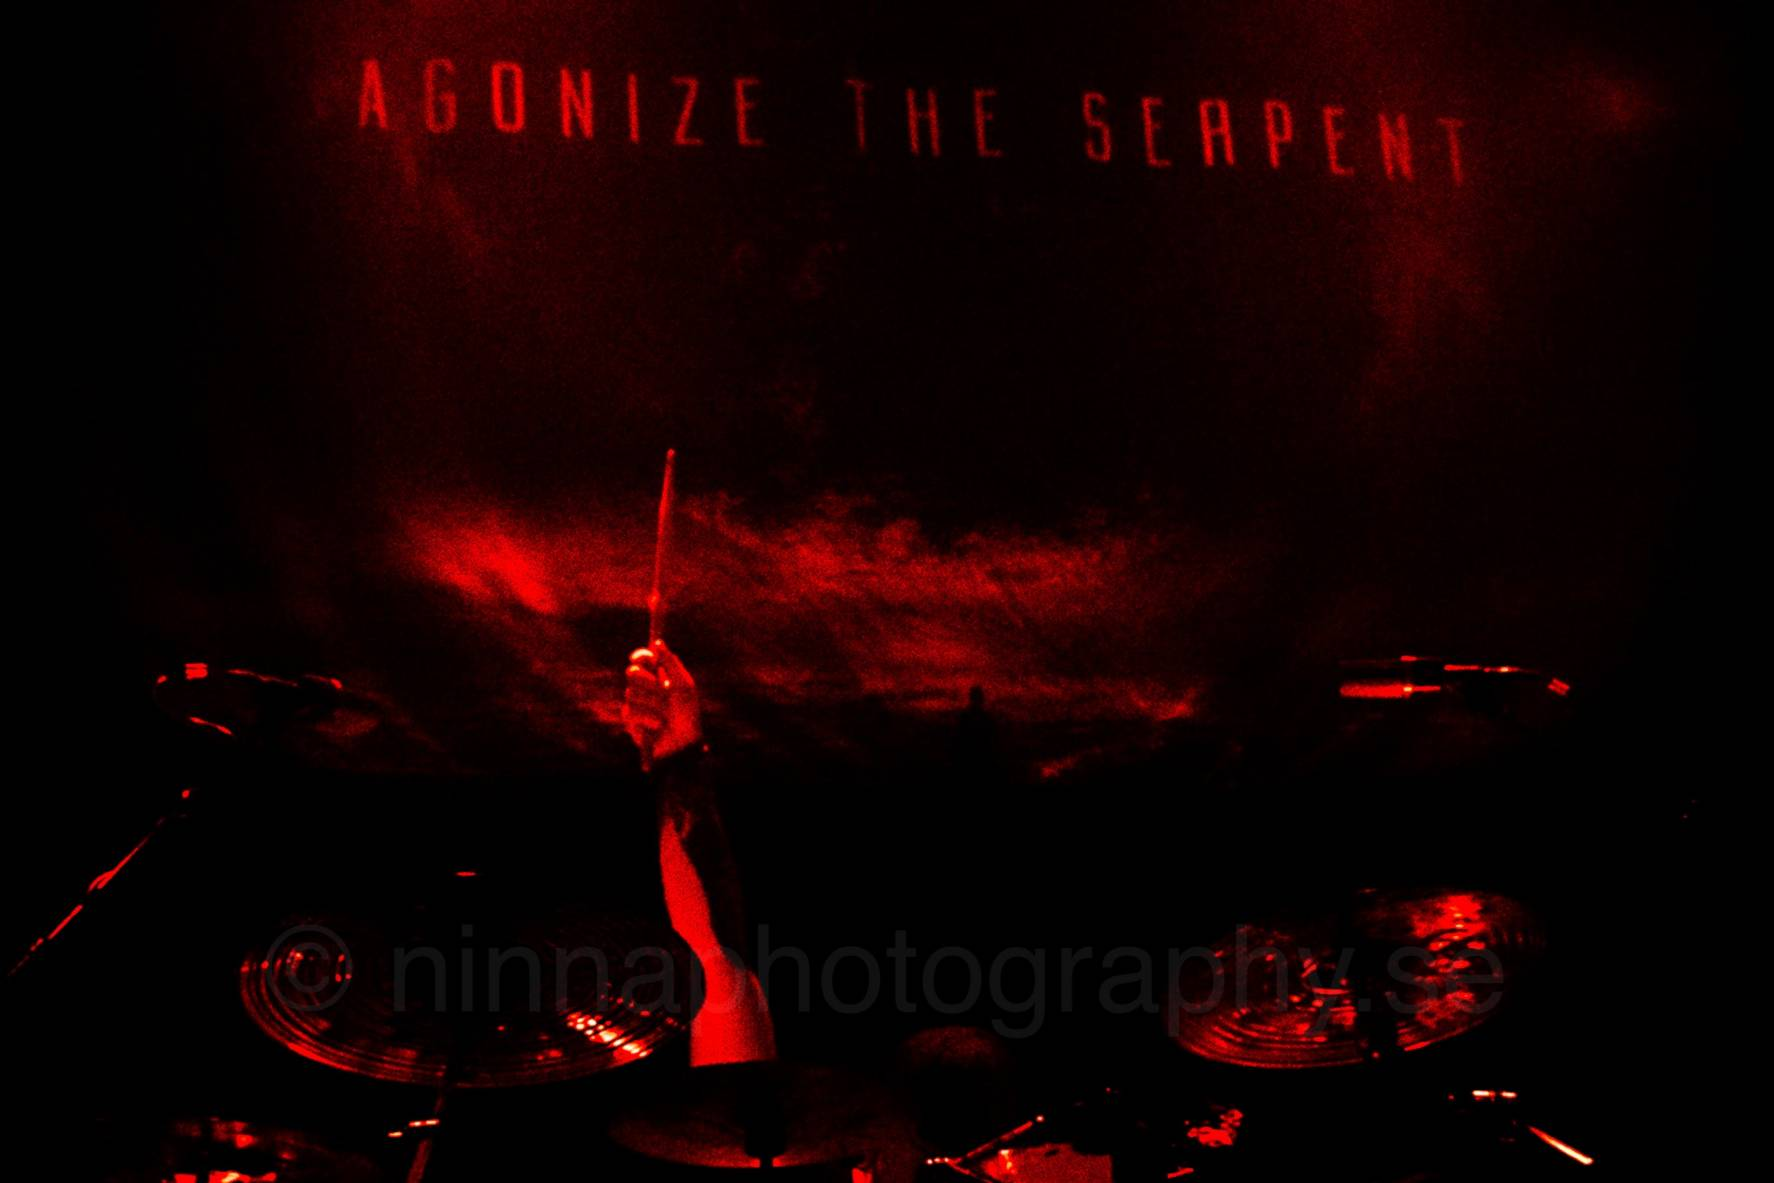 Agonize the Serpent